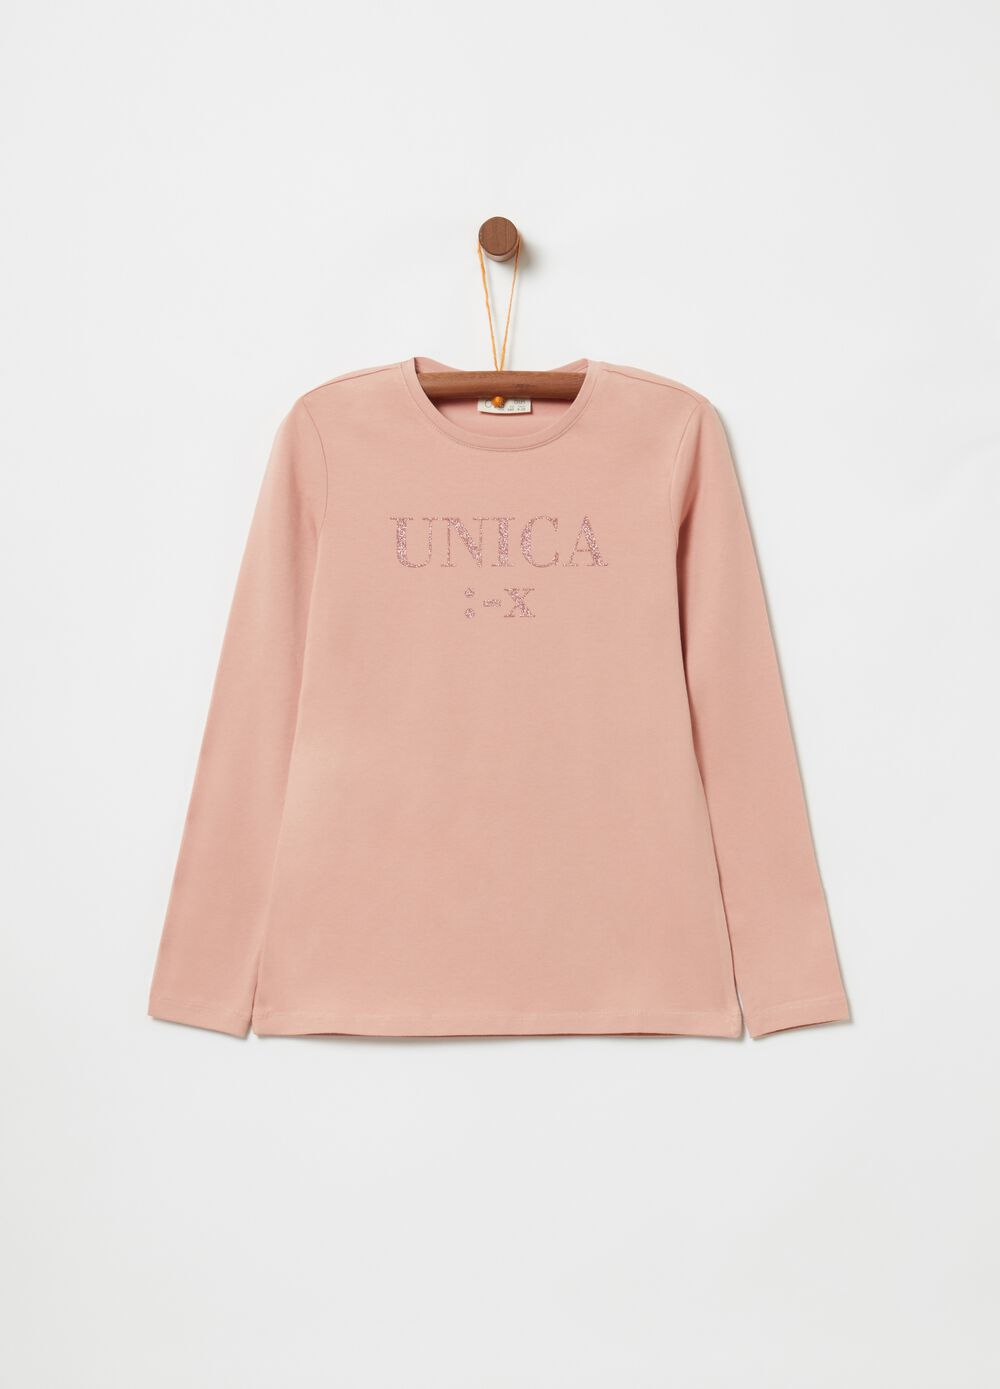 Long-sleeved T-shirt with glitter lettering